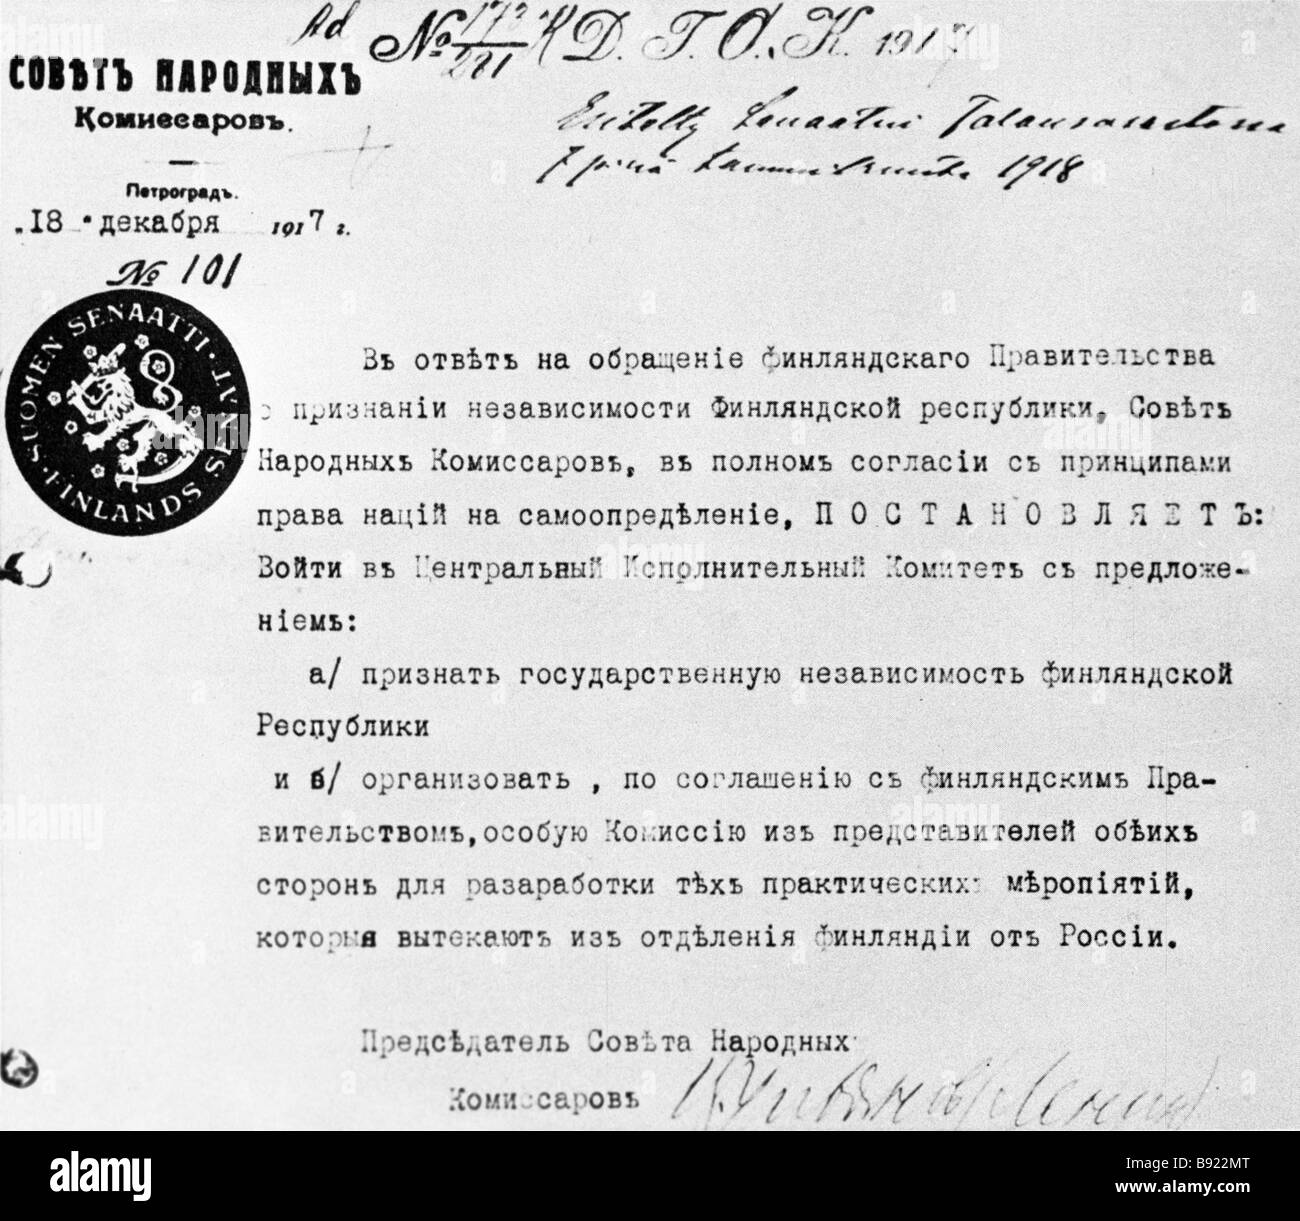 Decree by the Council of the RSFSR People s Commissars dated December 31 1917 on recognition by the Soviet state - Stock Image